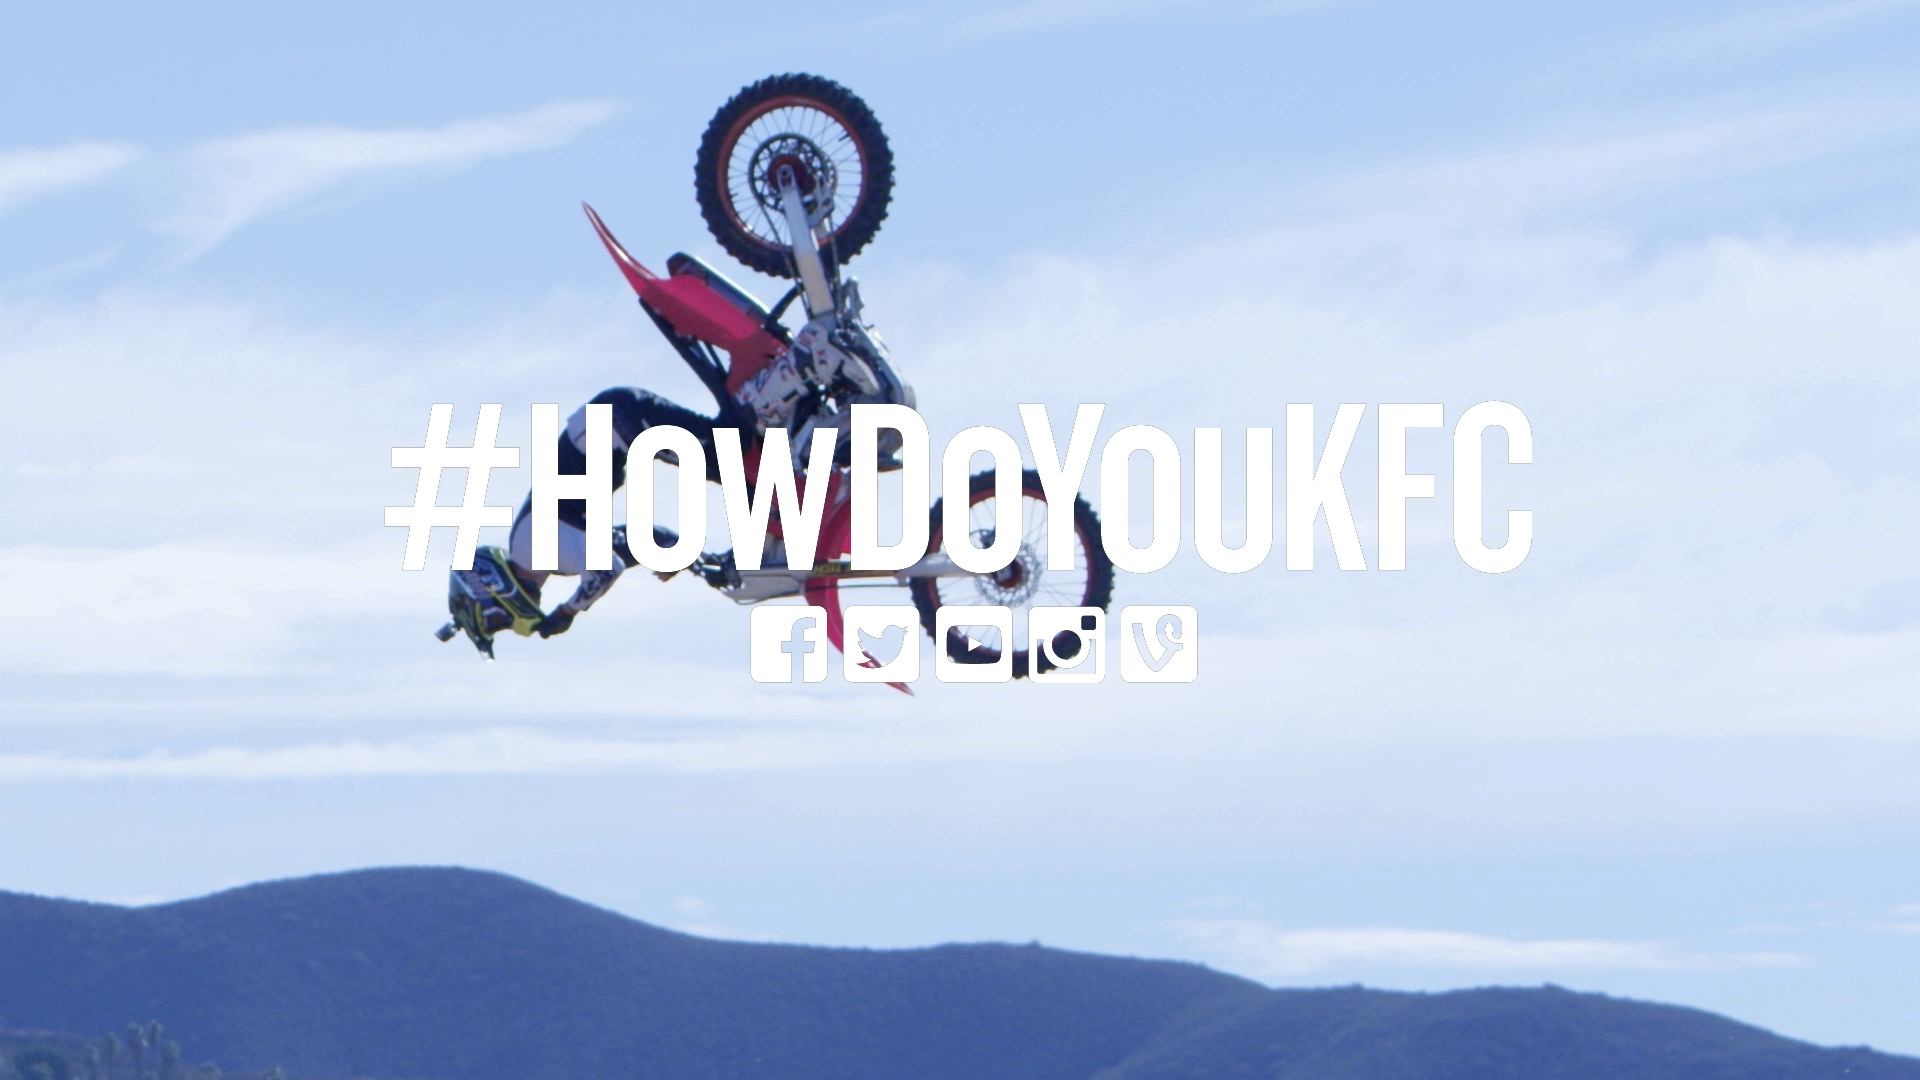 As part of the #HowDoYouKFC movement launched earlier this month, KFC developed a film featuring Hudson doing the world's first backflip while eating chicken. The video will now become a television ad. (Photo: Business Wire)